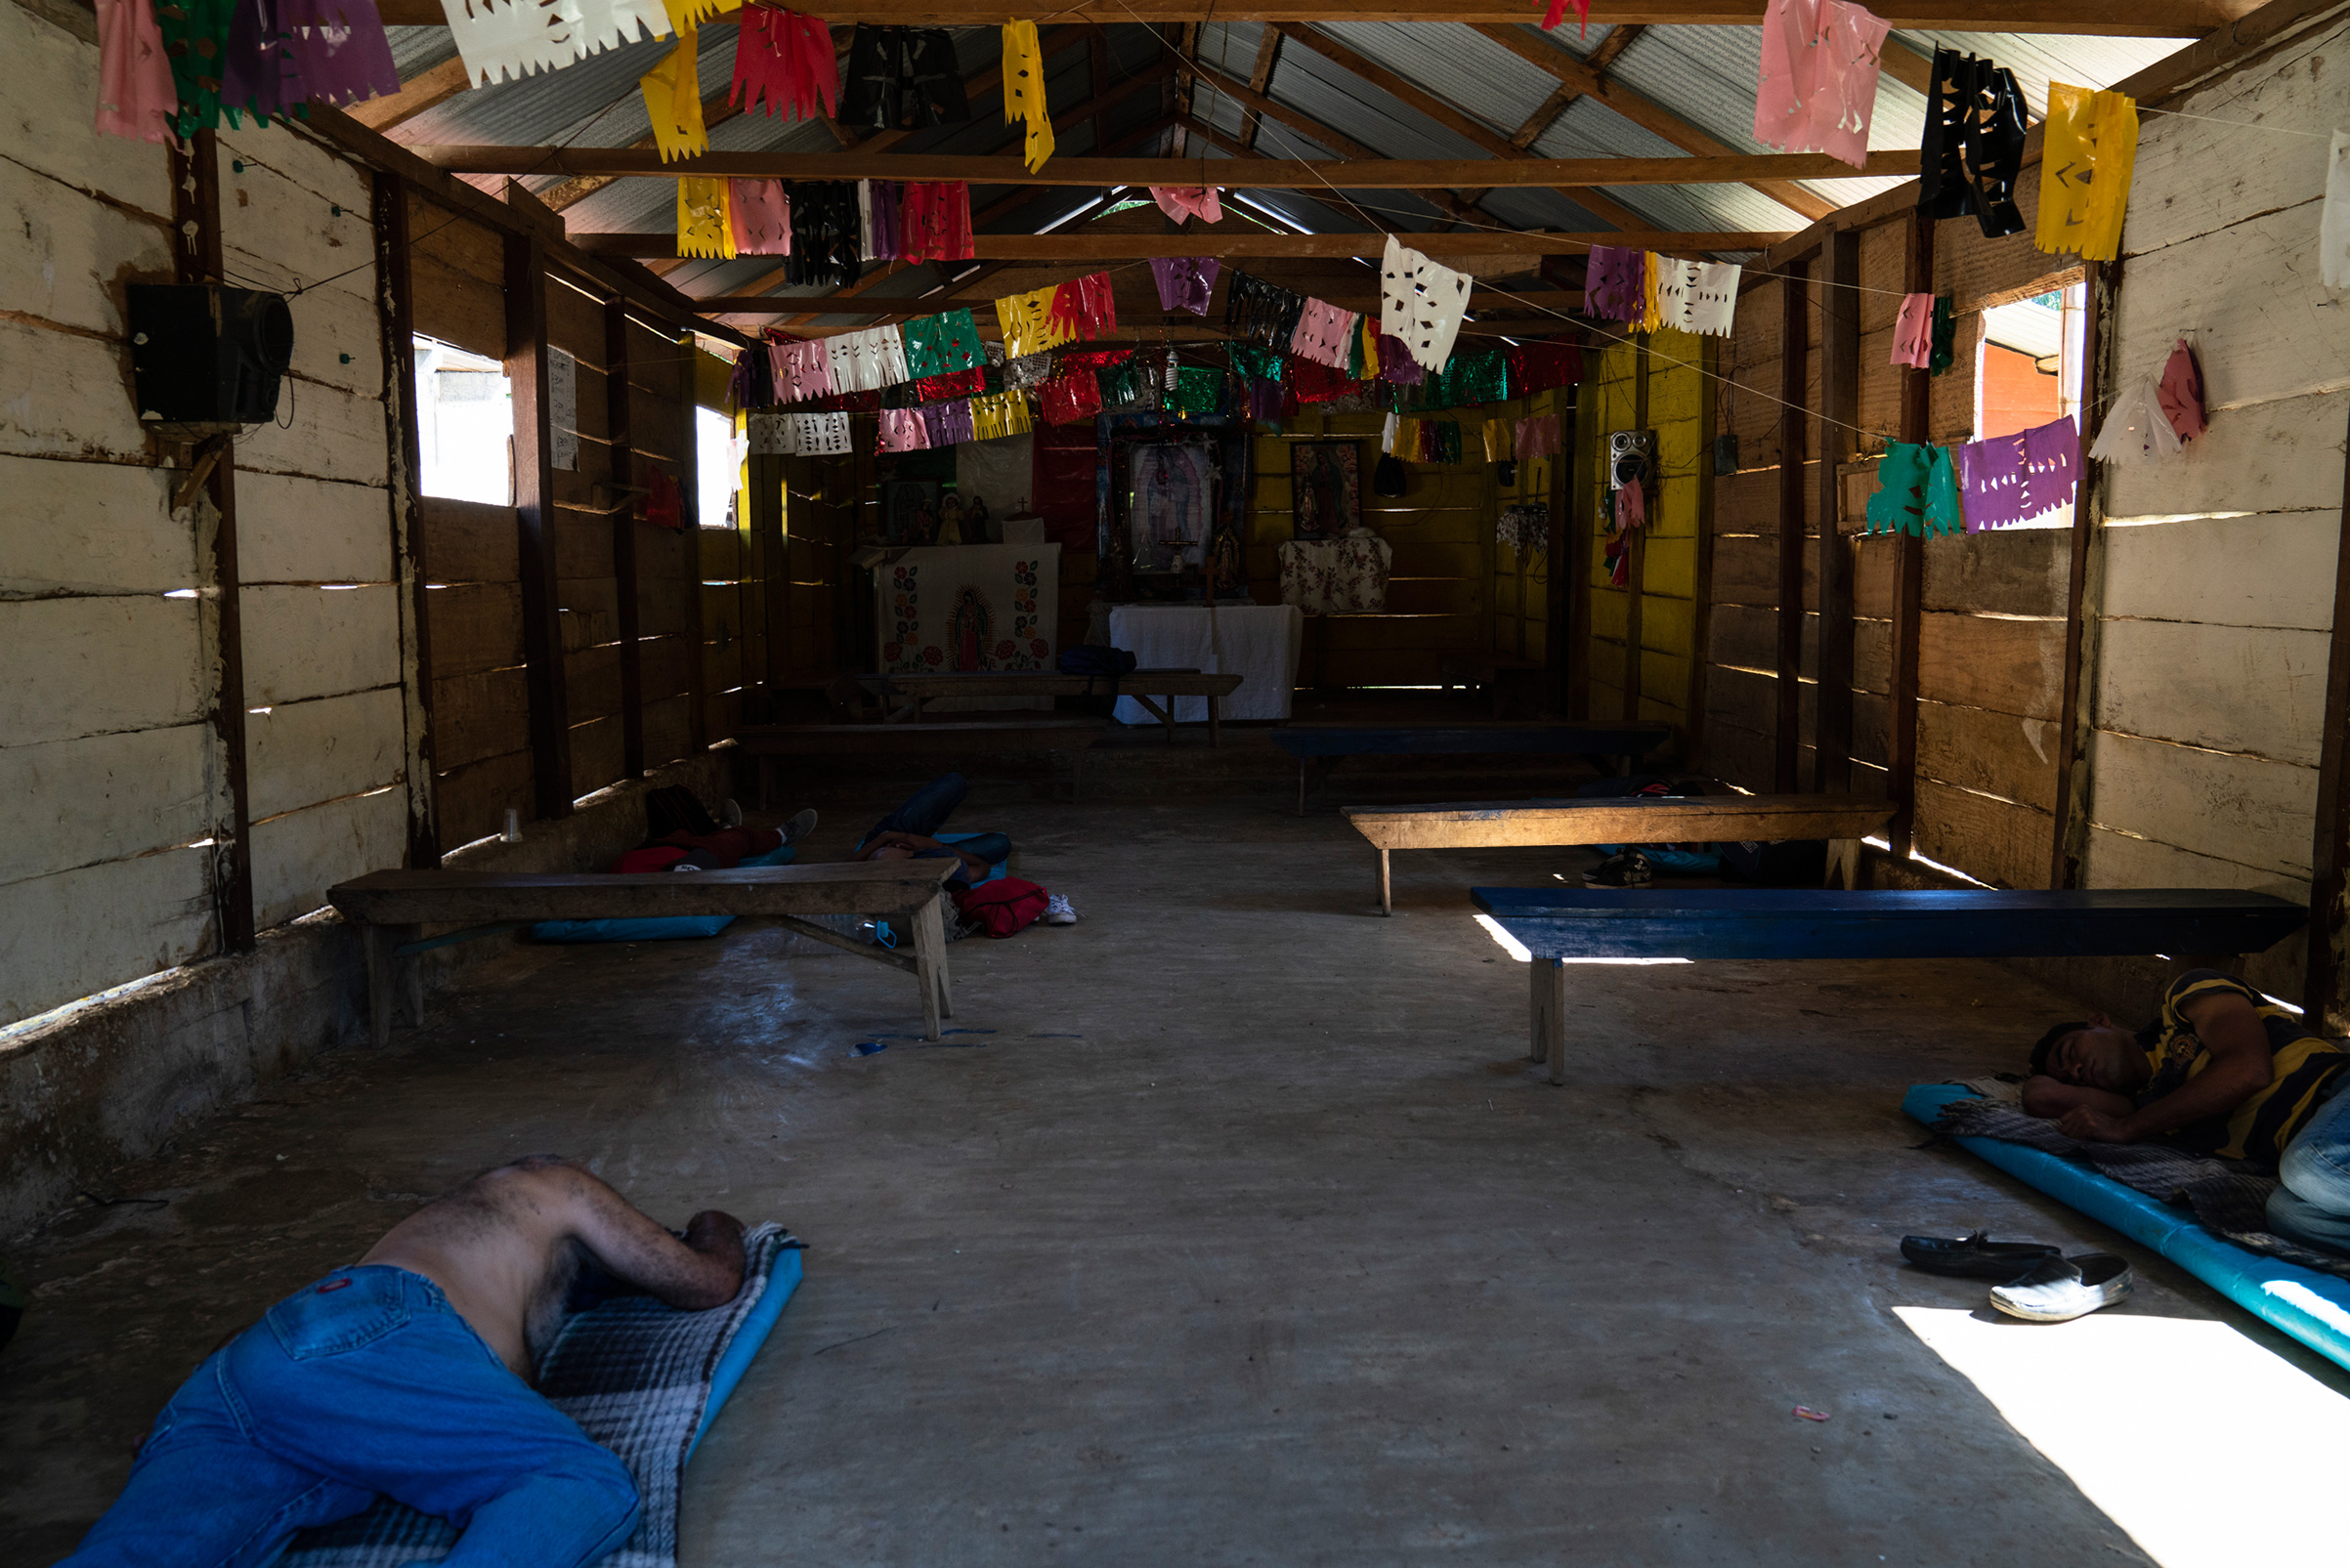 Honduran migrants Juan Ramón Andino, 60, left and José, 40, right, sleep in a church that also serves as a migrant shelter in General Emiliano Zapata del Valle near Palenque, Chiapas, on Oct. 24. The shelter is located along highway 307, known as  The Great Pacific Corridor of the Migrant,  and is a common route for Honduran migrants.